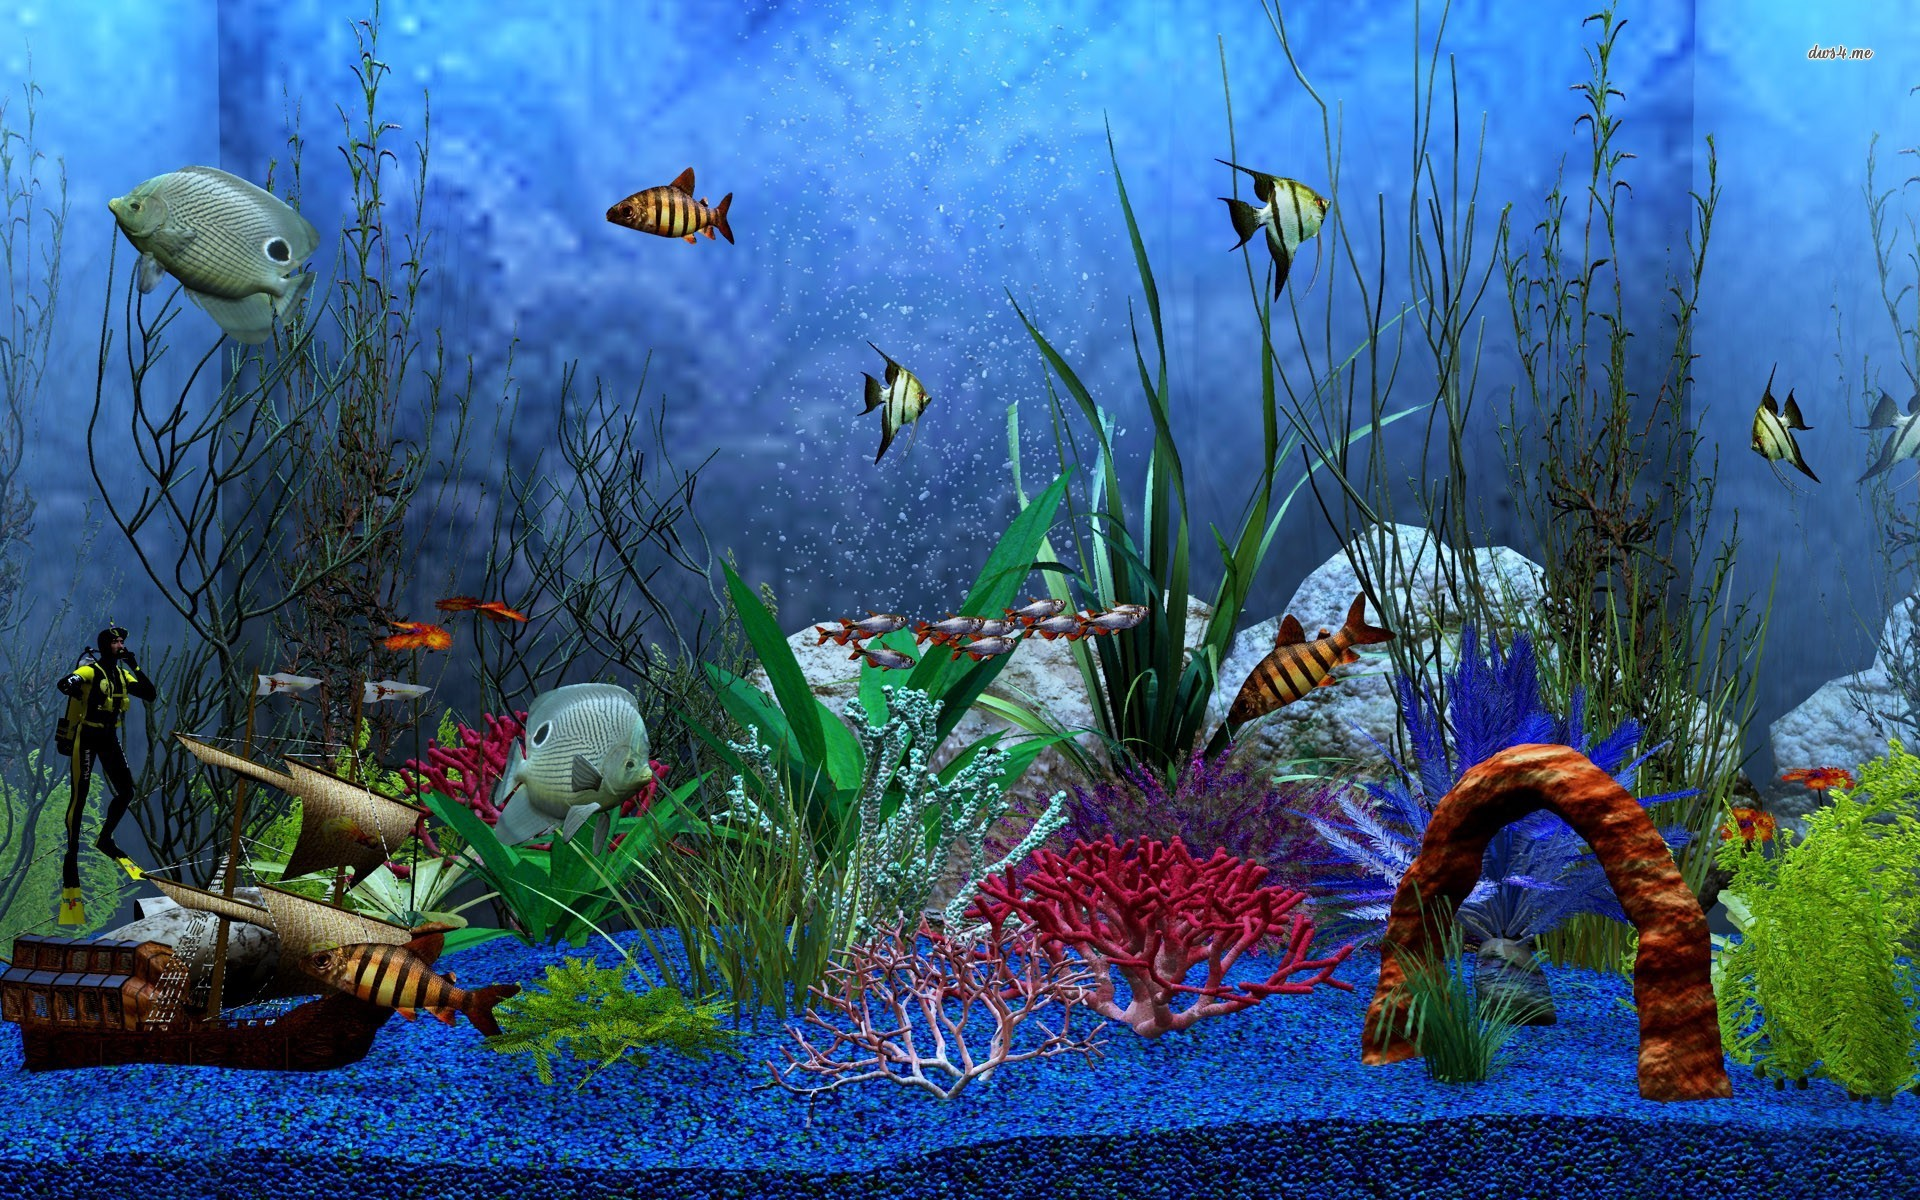 Aquarium screensaver fish tank 1080p hd - Aquarium Wallpaper Wallpaper Hd Wide